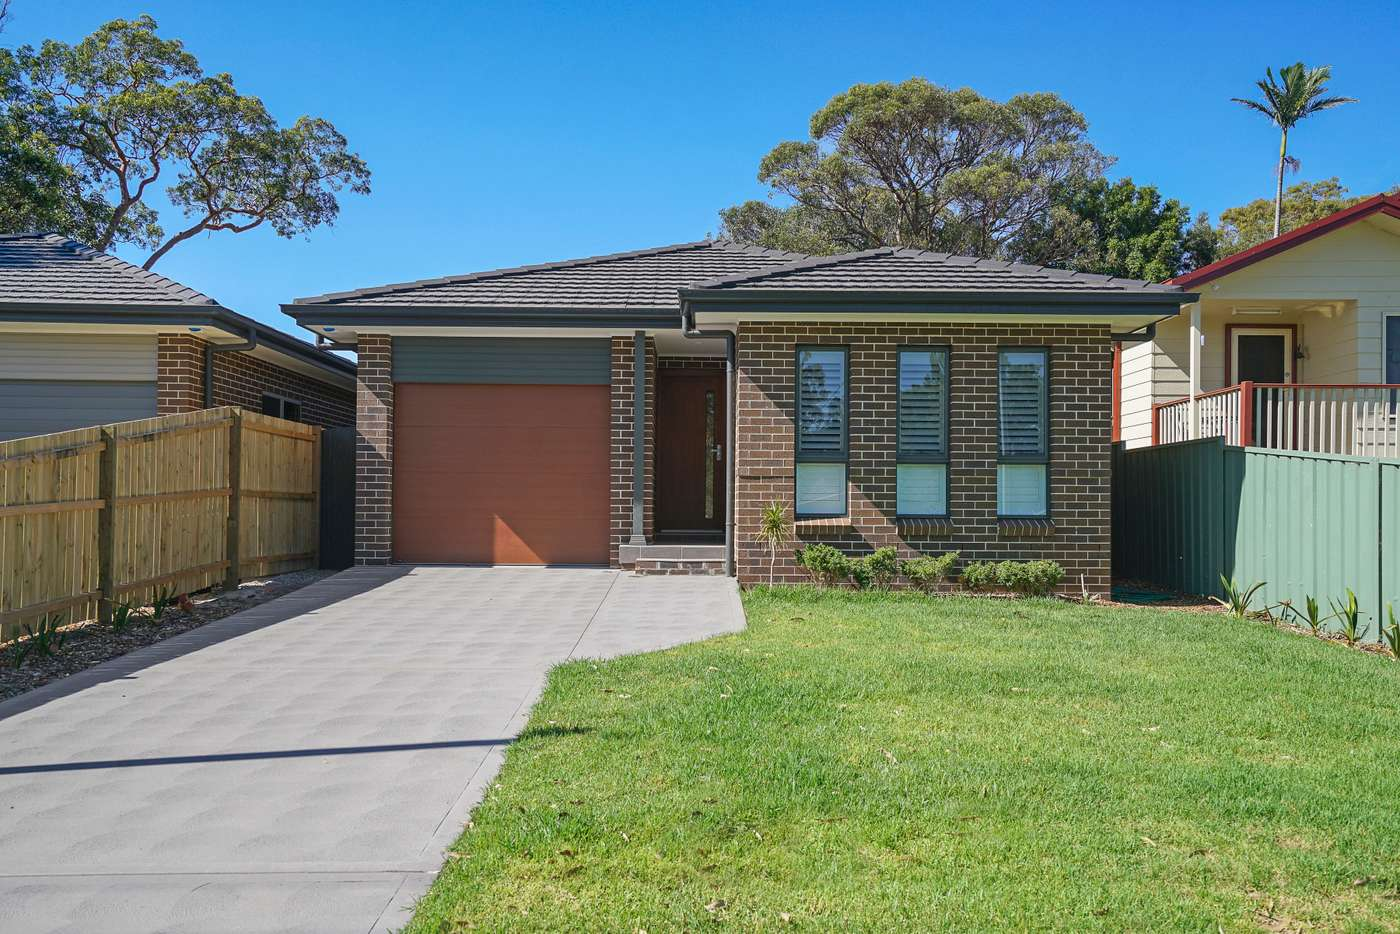 Main view of Homely house listing, 66 Wood Street, Bonnells Bay, NSW 2264